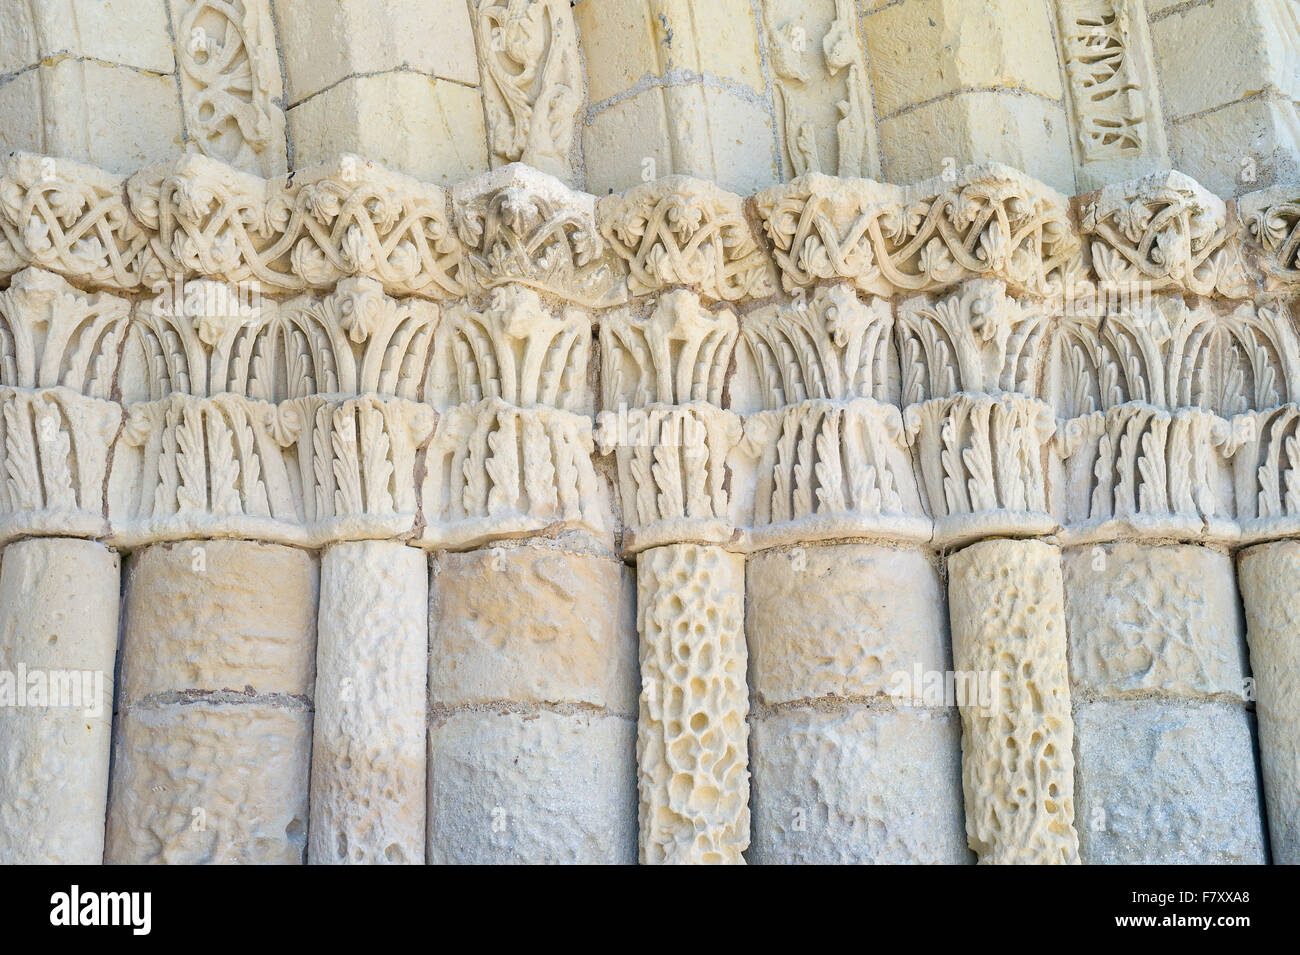 Decorative stone carving above the entrance door to St Peter's Church – Eglise Saint-Pierre, Echebrune, Charente - Stock Image